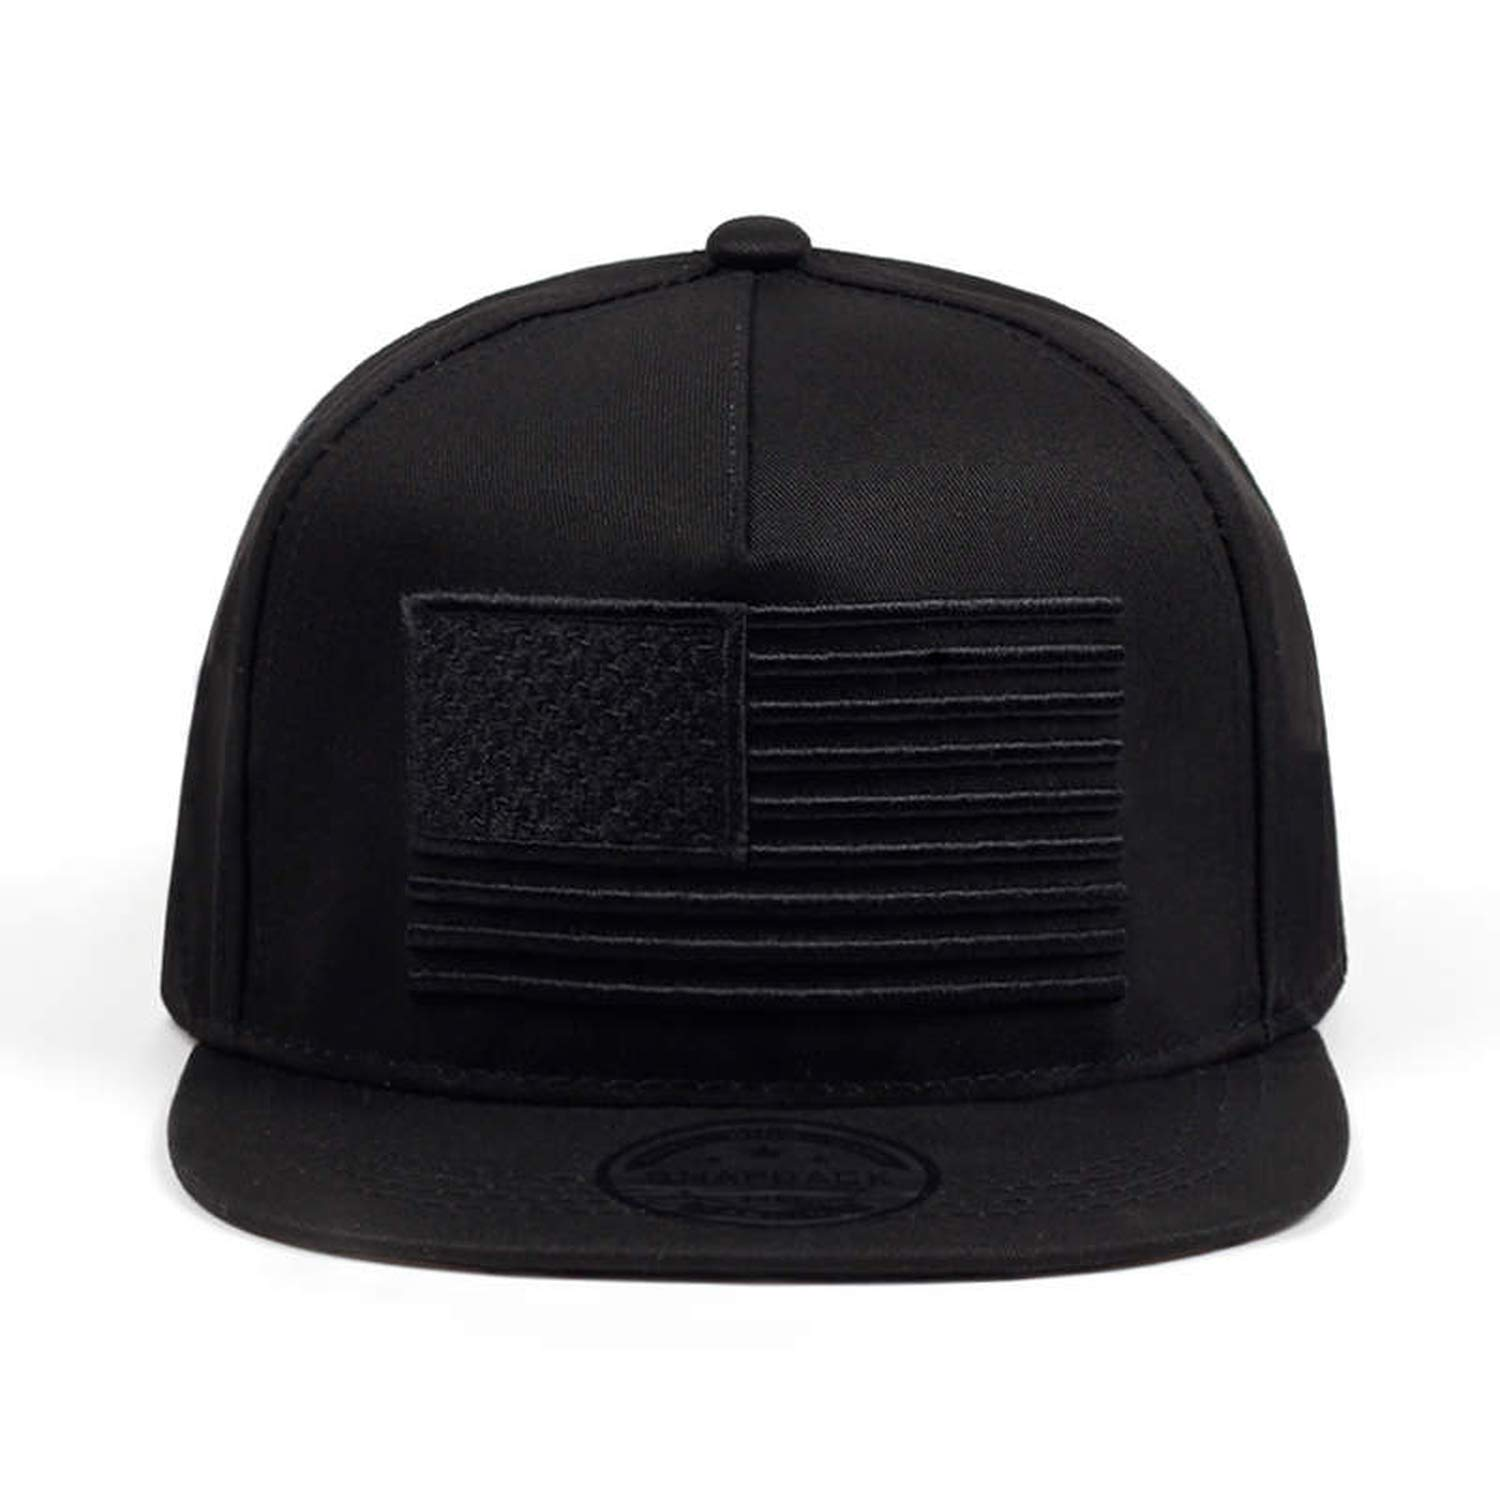 Amazon.com: Baseball Cap Mens Gorras Snapbacks 3D Flag Hat Ourdoor Hip Hop Snapback Cap Black: Clothing